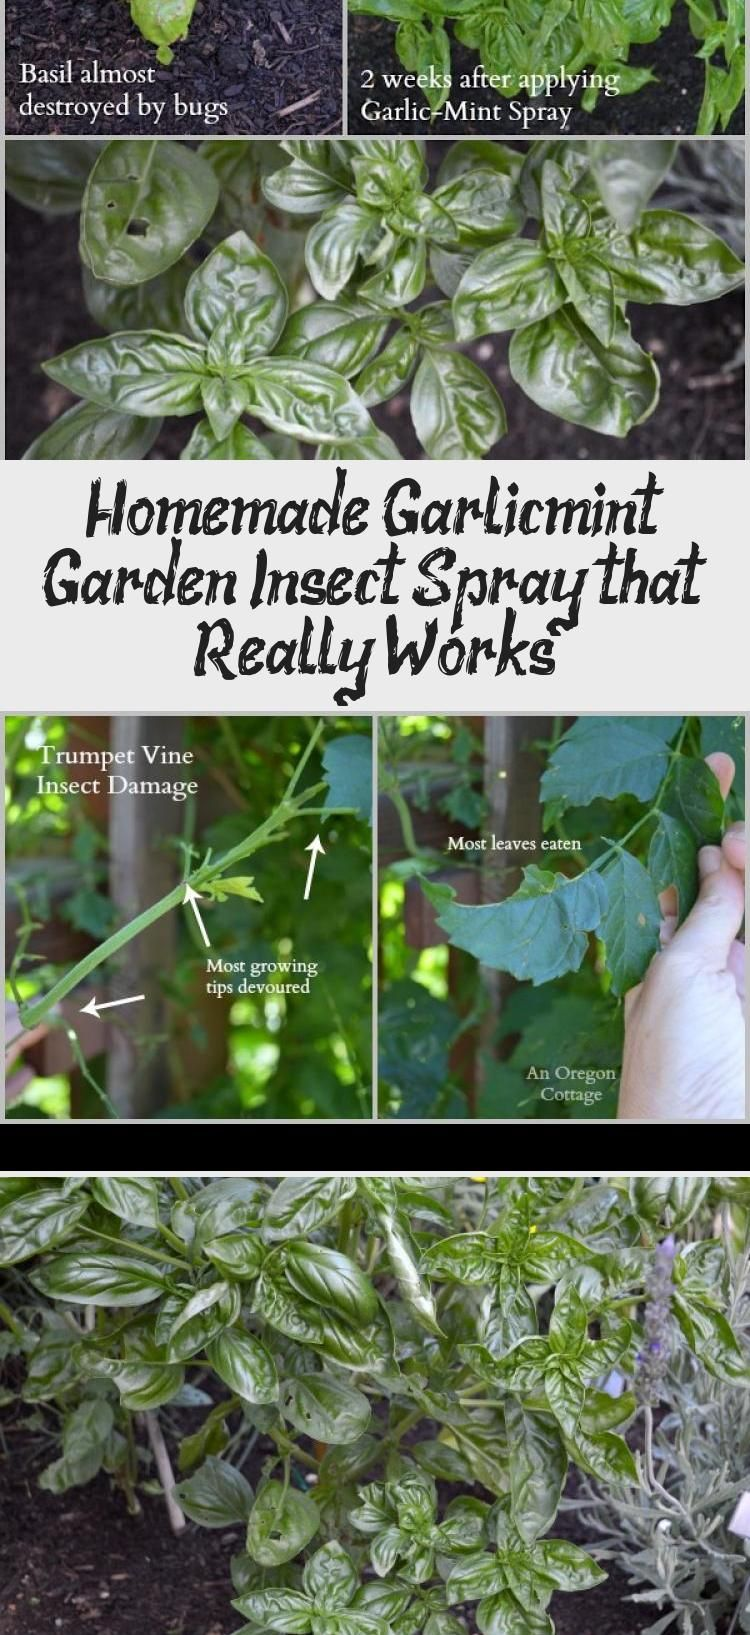 Easy to make and use homemade garlicmint garden insect